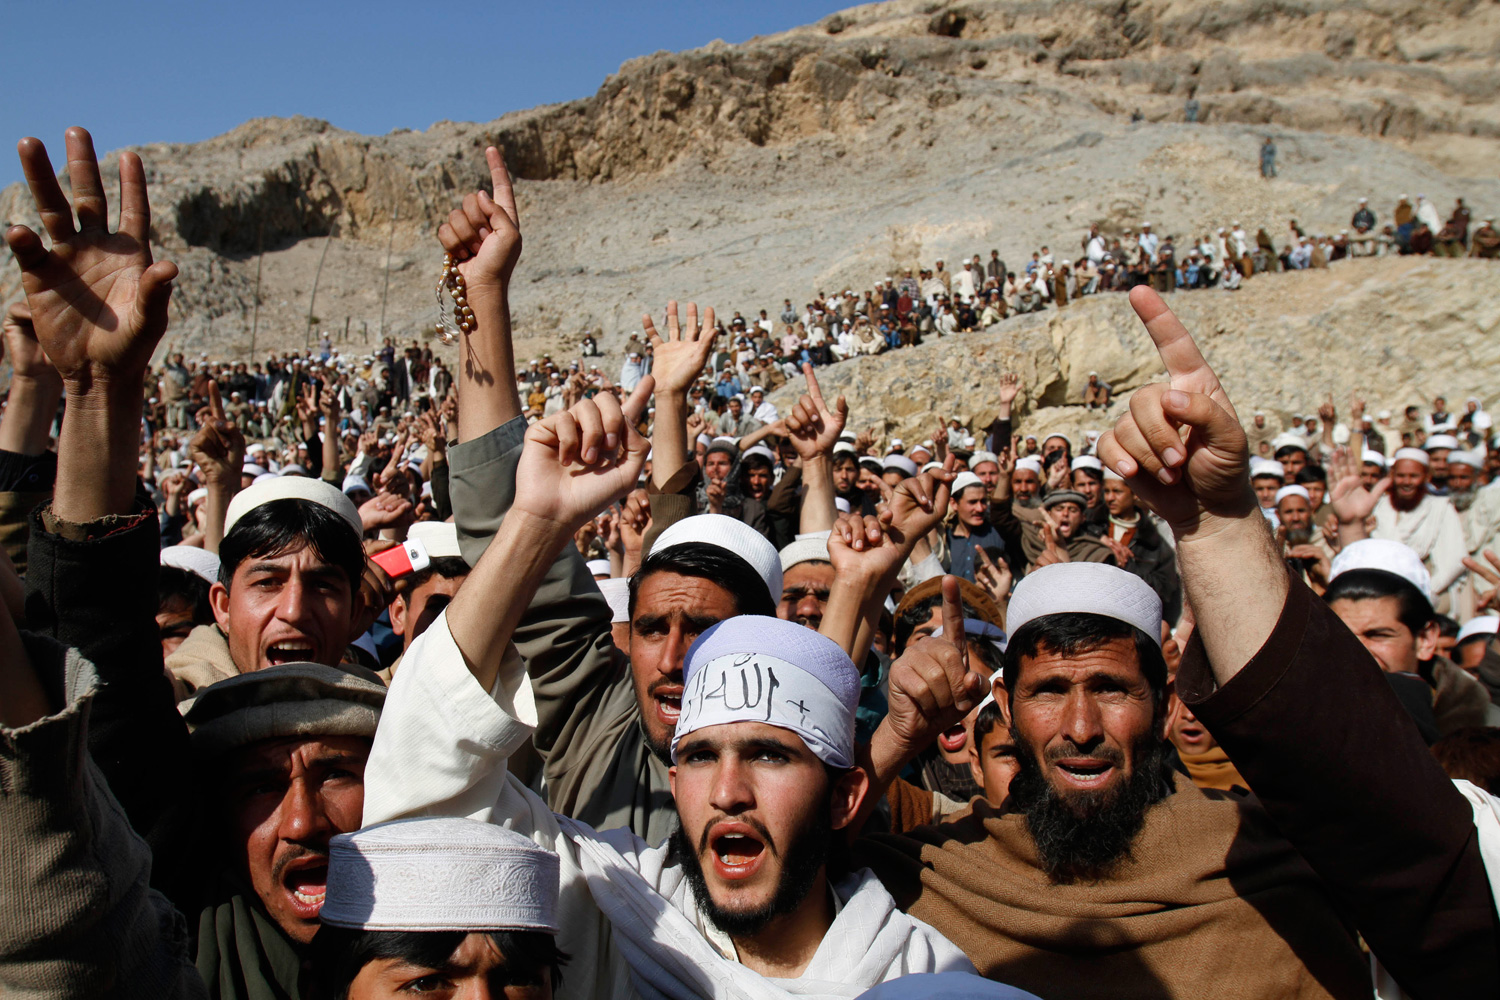 Feb. 24, 2012. Afghans shout slogans during an anti-U.S. protest over the burning of Korans at a military bass in Afghanistan, in Ghani Khail, east of Kabul.